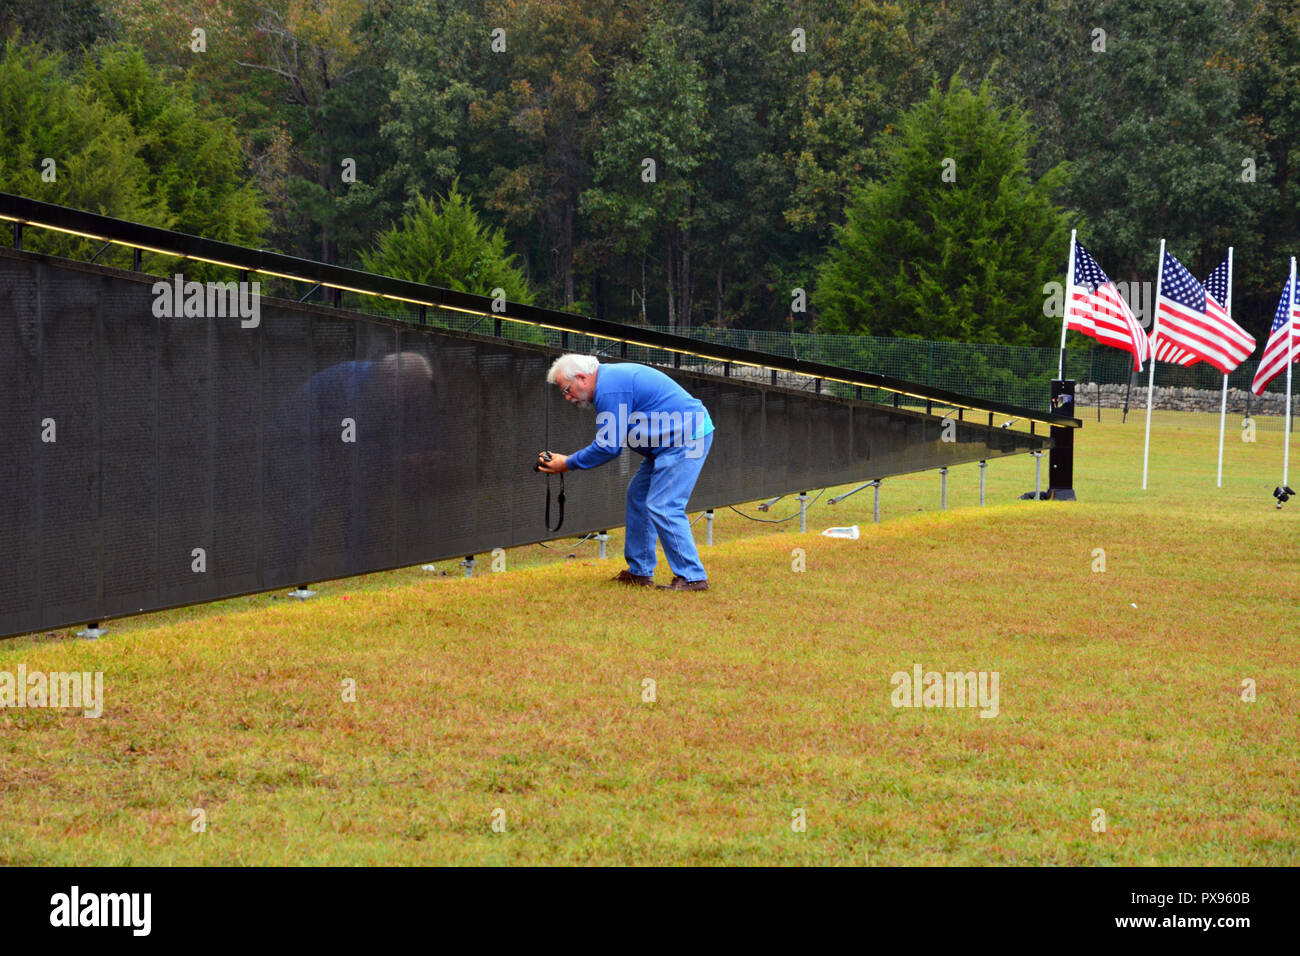 Wake Forest, North Carolina, United States. 20th Oct, 2018: The Wall That Heals, a mobile replica of the Vietnam Memorial in Washington DC, visits Wake Forest on it's cross country journey honoring veterans and to provide friends and families a way to remember servicemen who died in the conflict. Credit: D Guest Smith/Alamy Live News - Stock Image